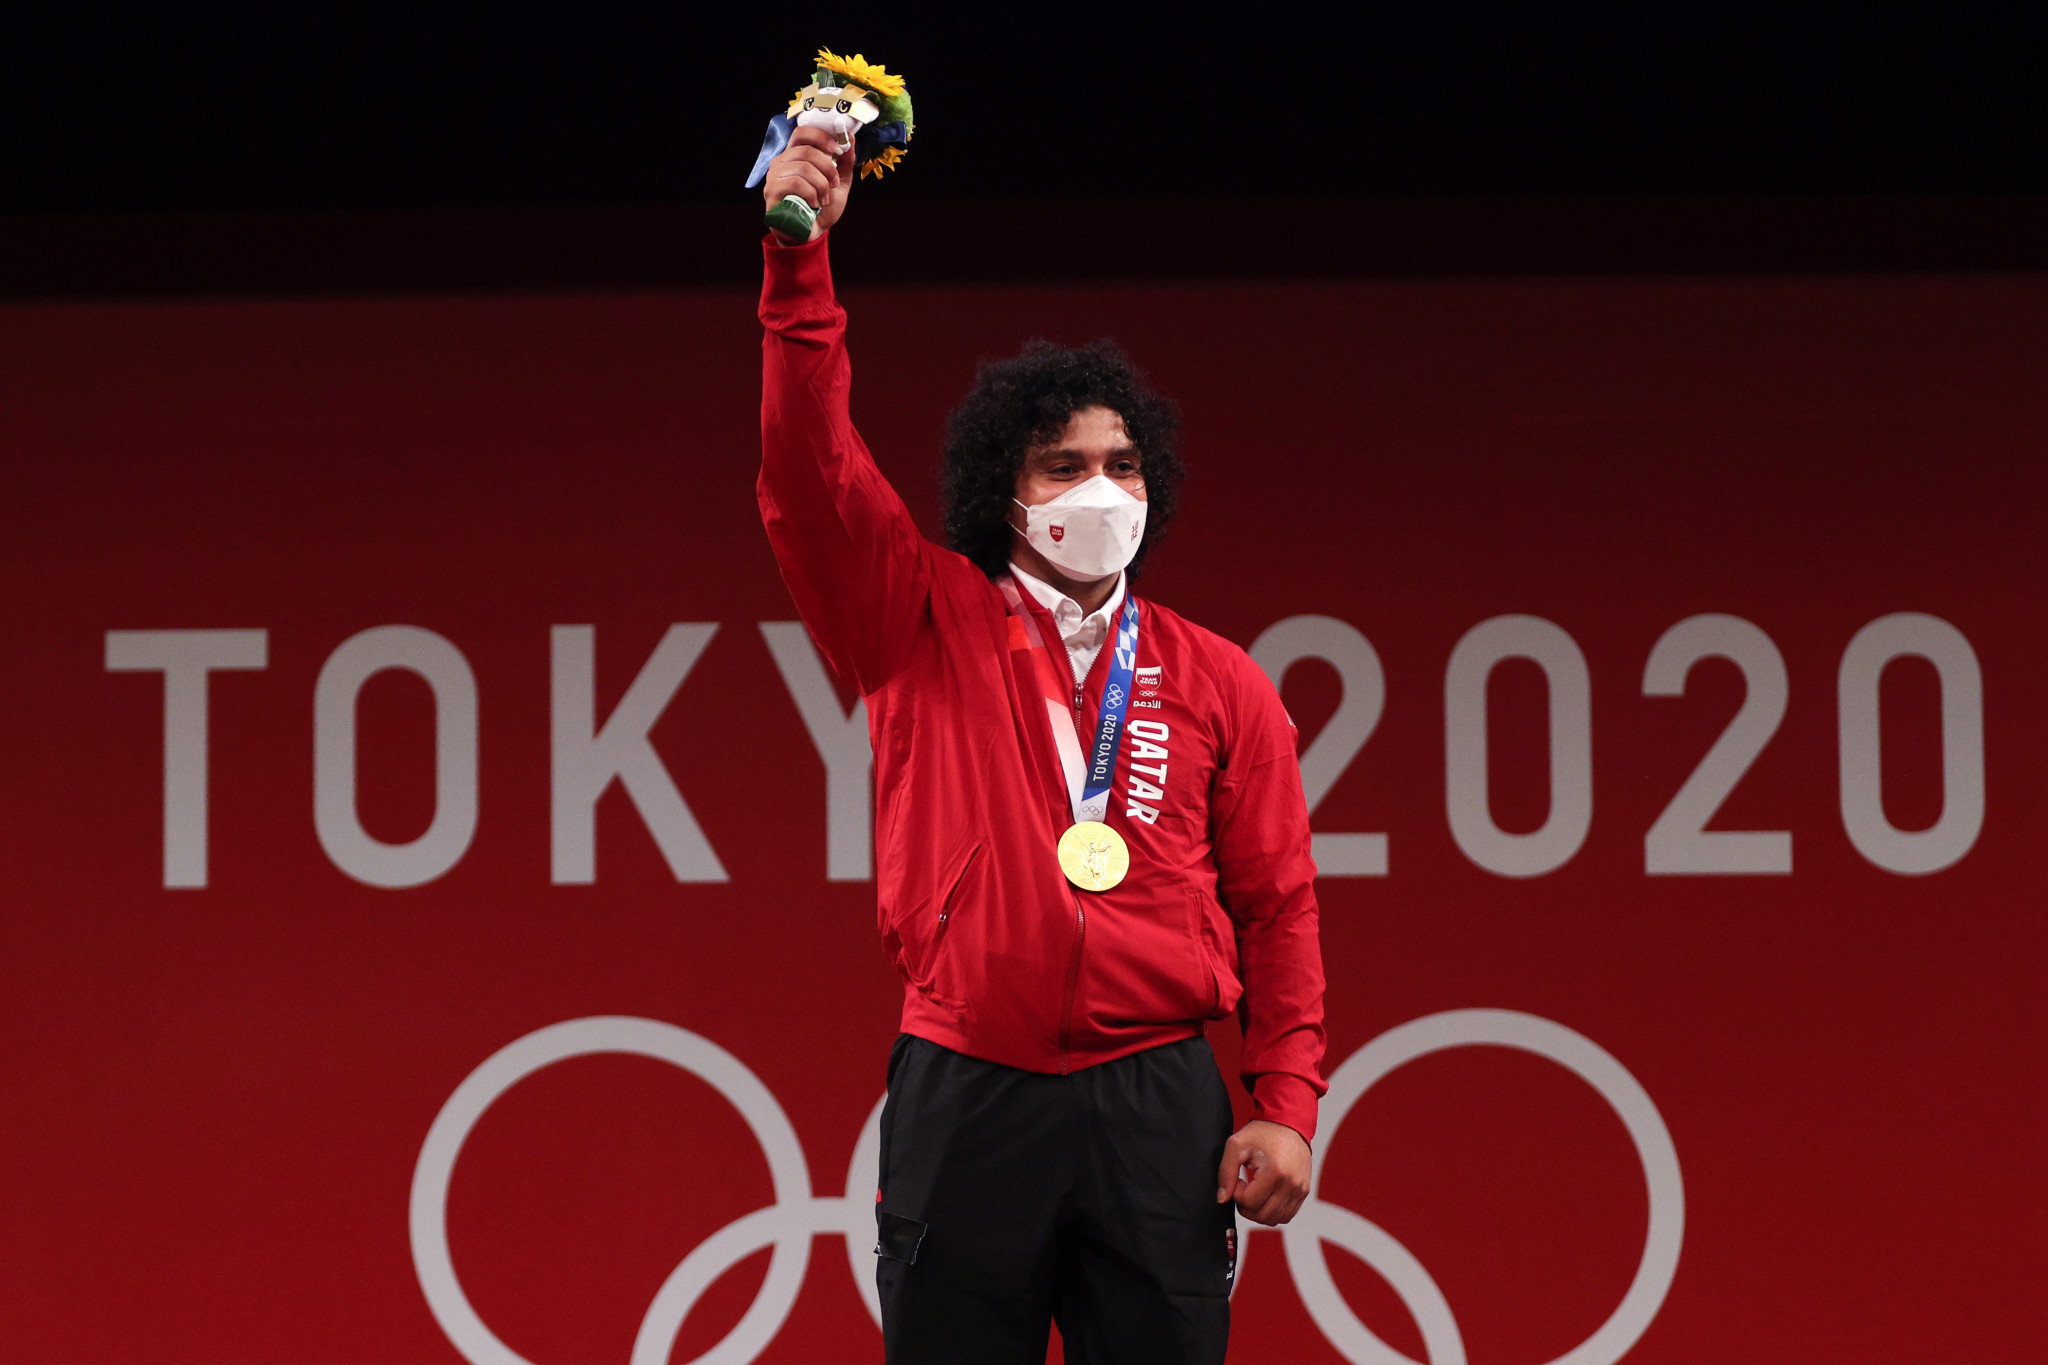 Qatar is the best at the Arab level at Tokyo Olympics